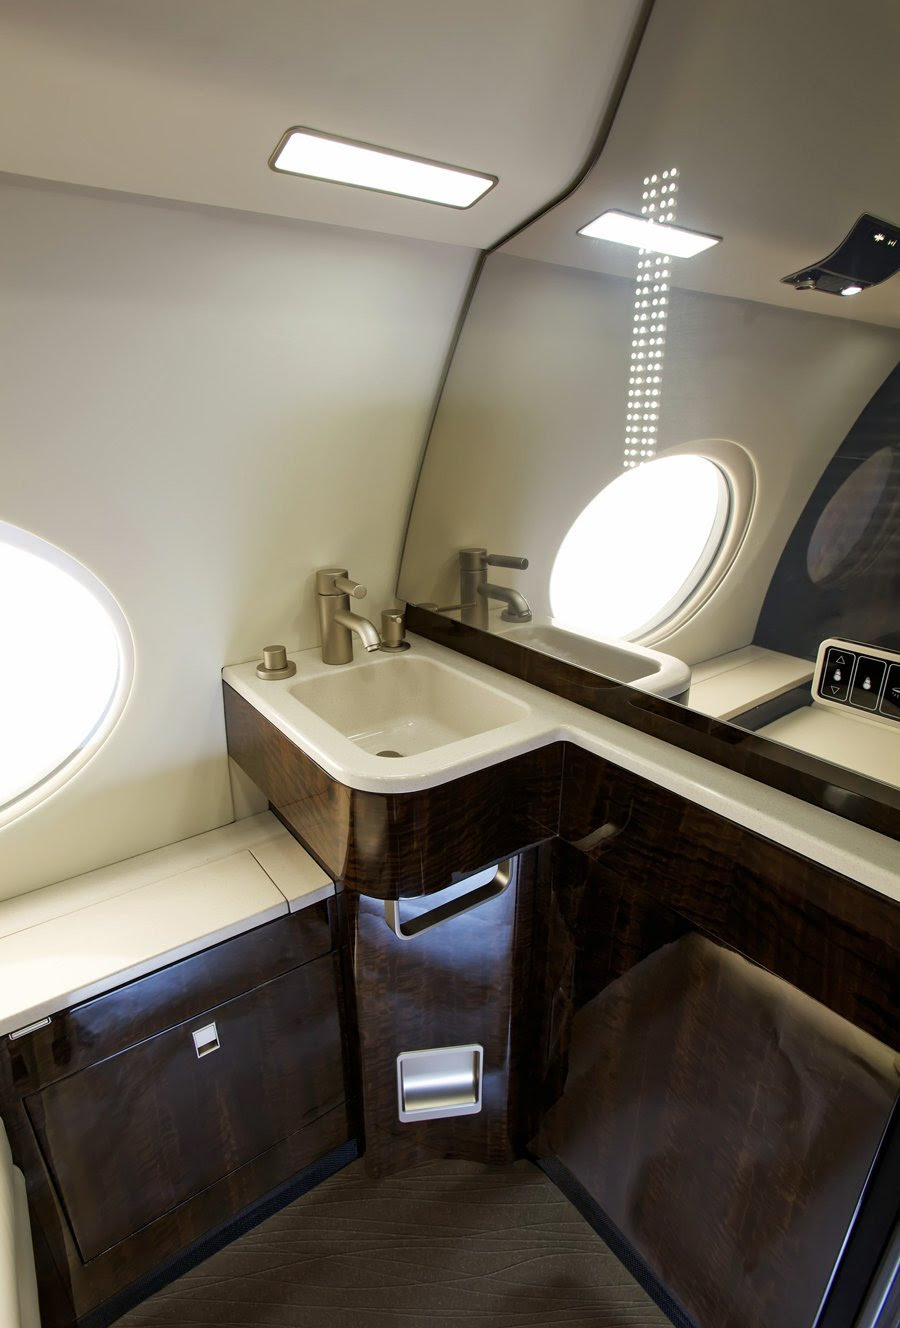 AD-Step-Inside-Rupert-Murdoch's-Luxurious-$84-Million-Private-Jet-09